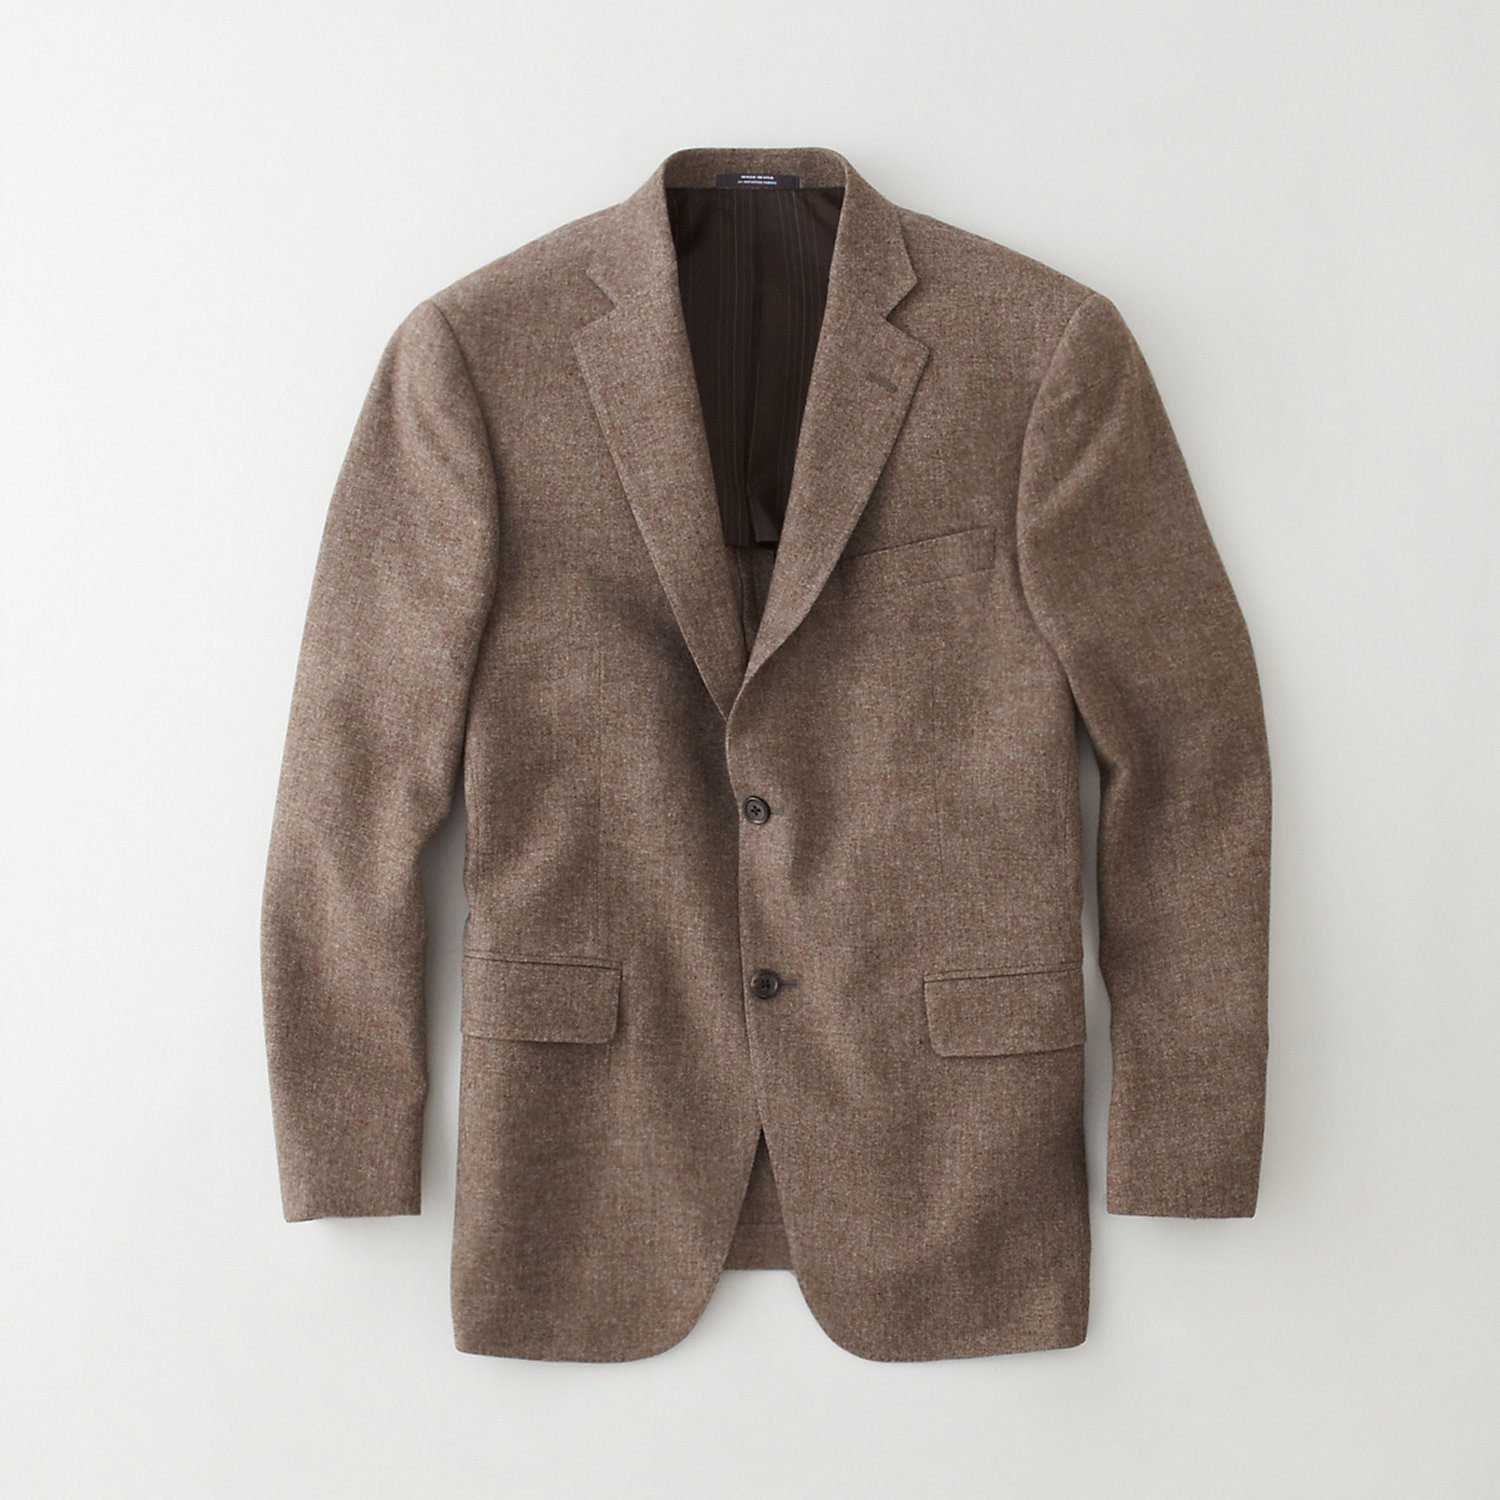 SOLID TWO BUTTON BLAZER